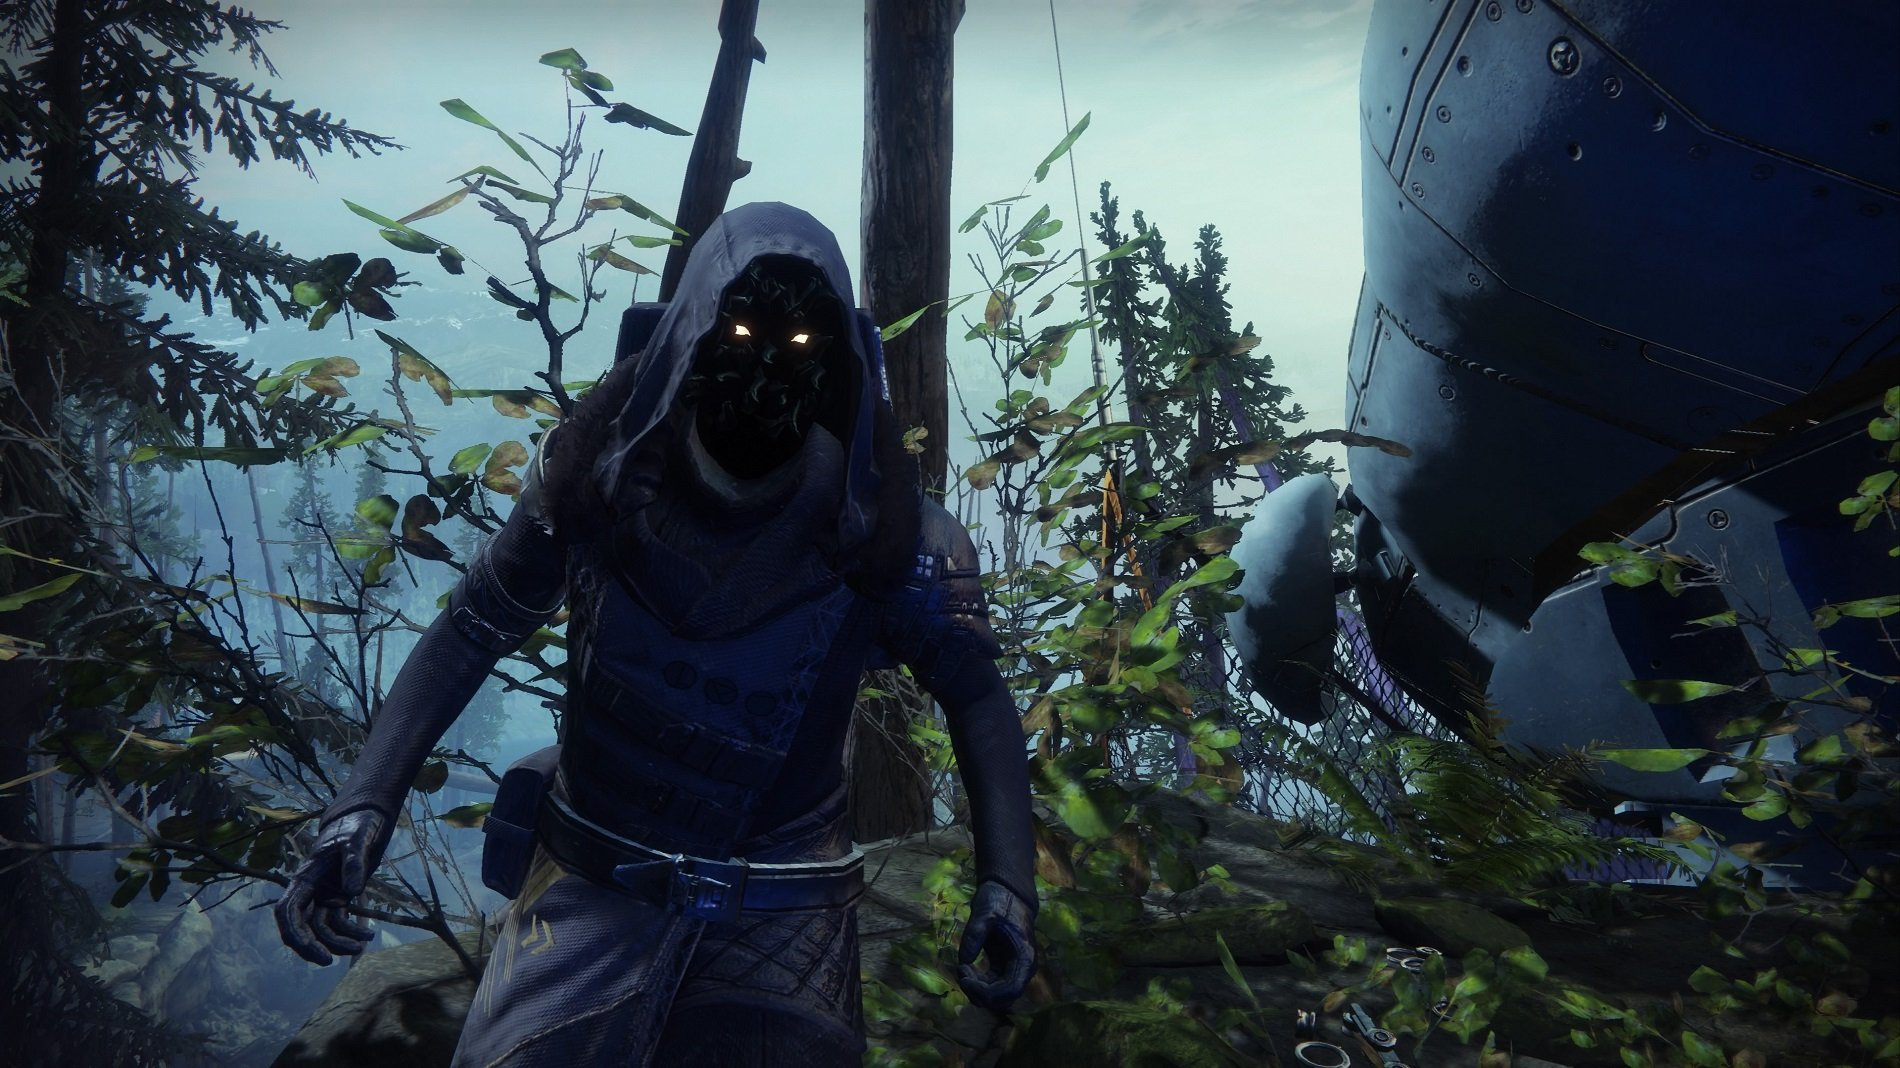 Where to find Xur in Destiny 2 - October 11, 2019